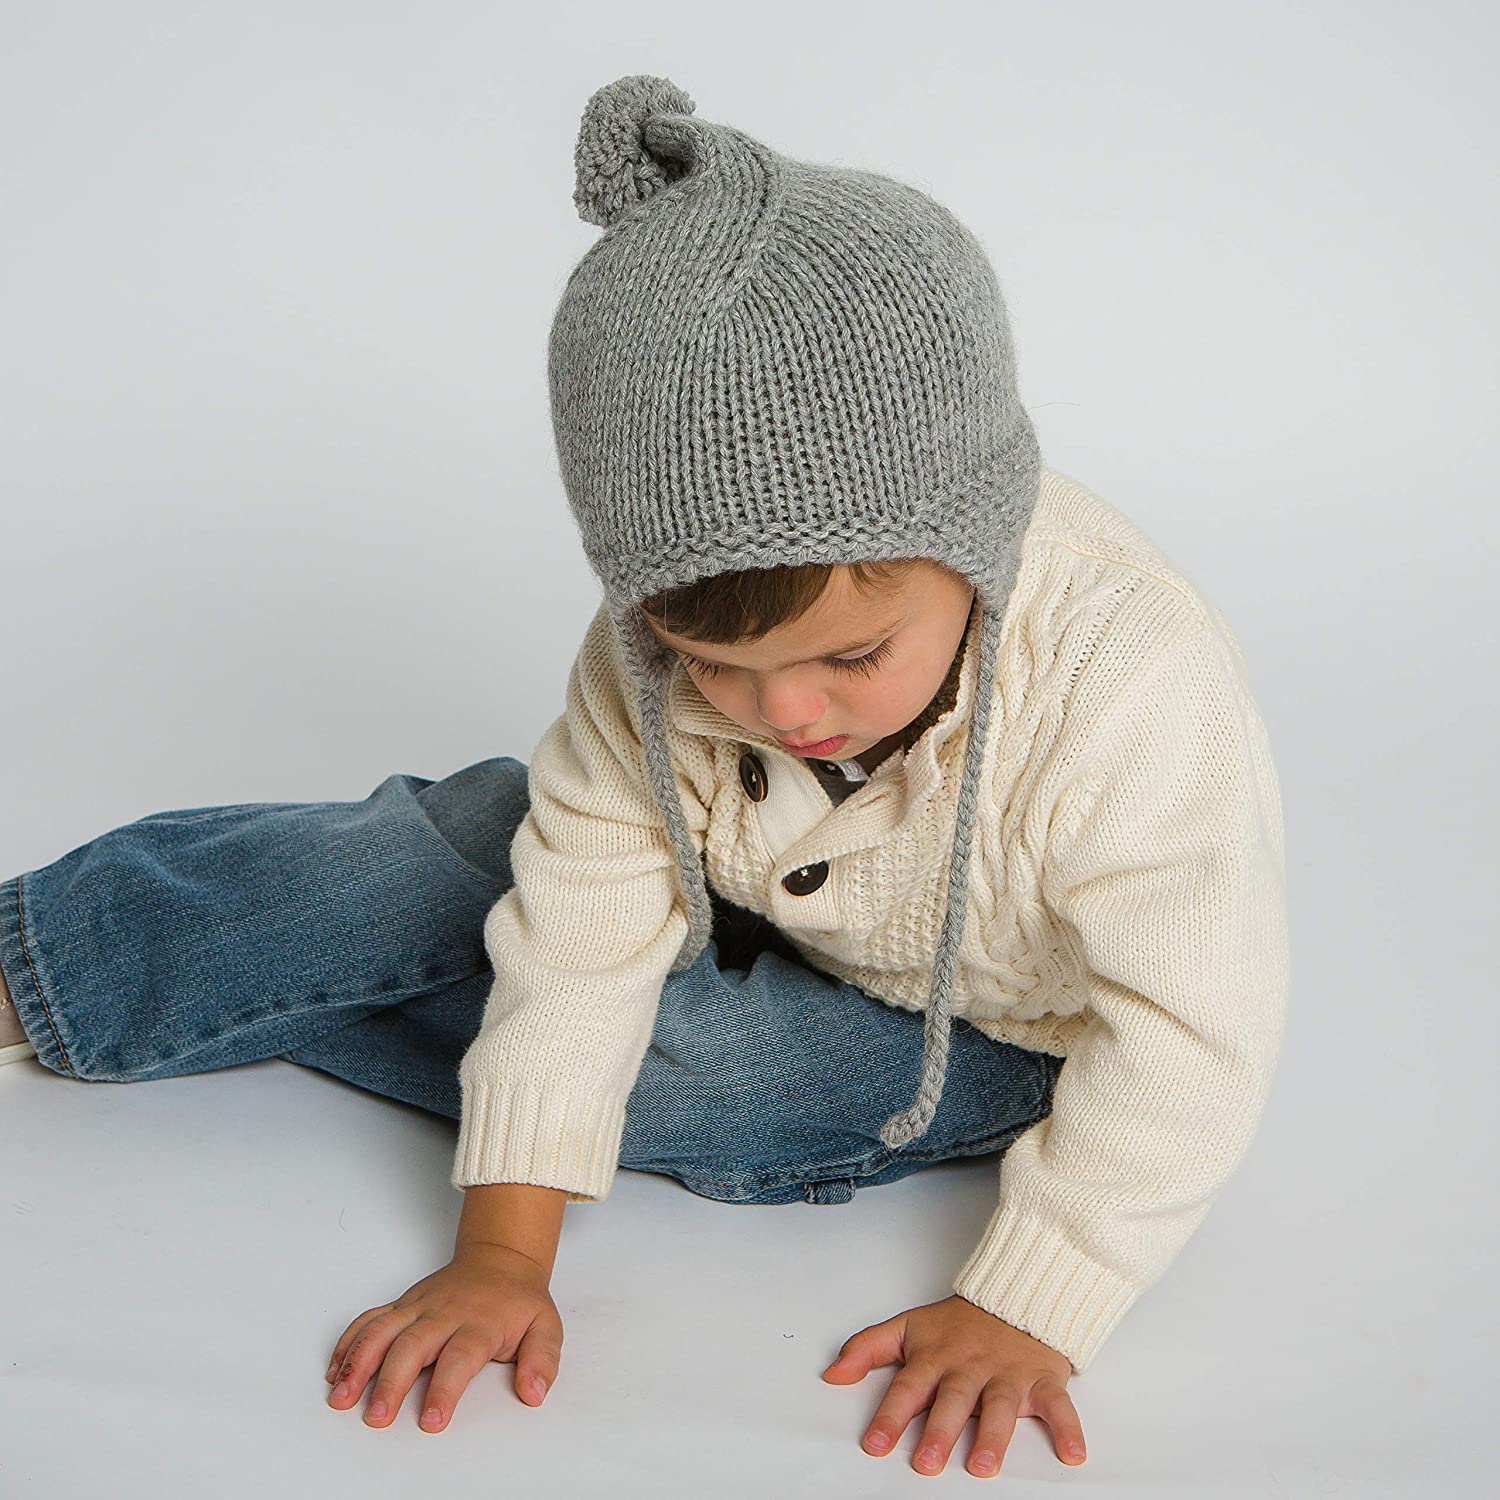 Hand-Knit 100% Organic Alpaca Wool | Caraz Bonnet Hat (Light Grey) by Surhilo | Soft, Quality, Hypoallergenic | The Perfect and Eco-Friendly Way to Keep Your Baby and Toddler Cozy and Comfortable